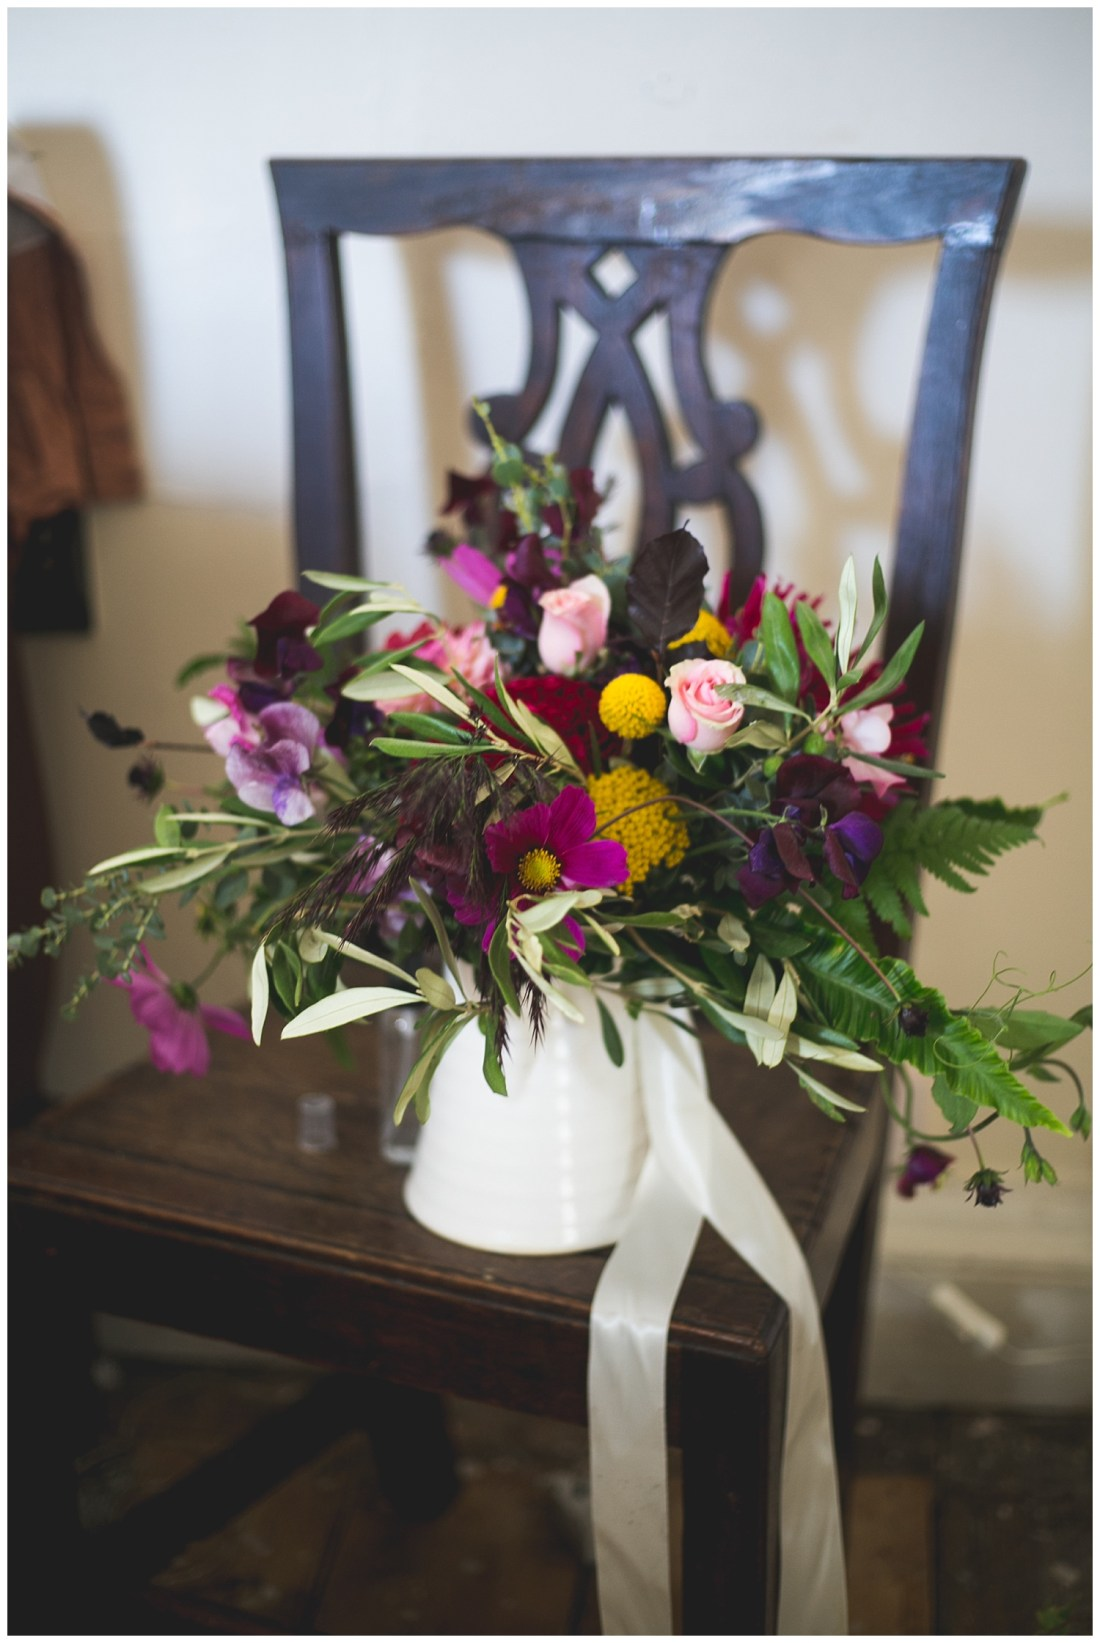 Wild rustic floral bouquet with pink roses, green leaves and purple accents